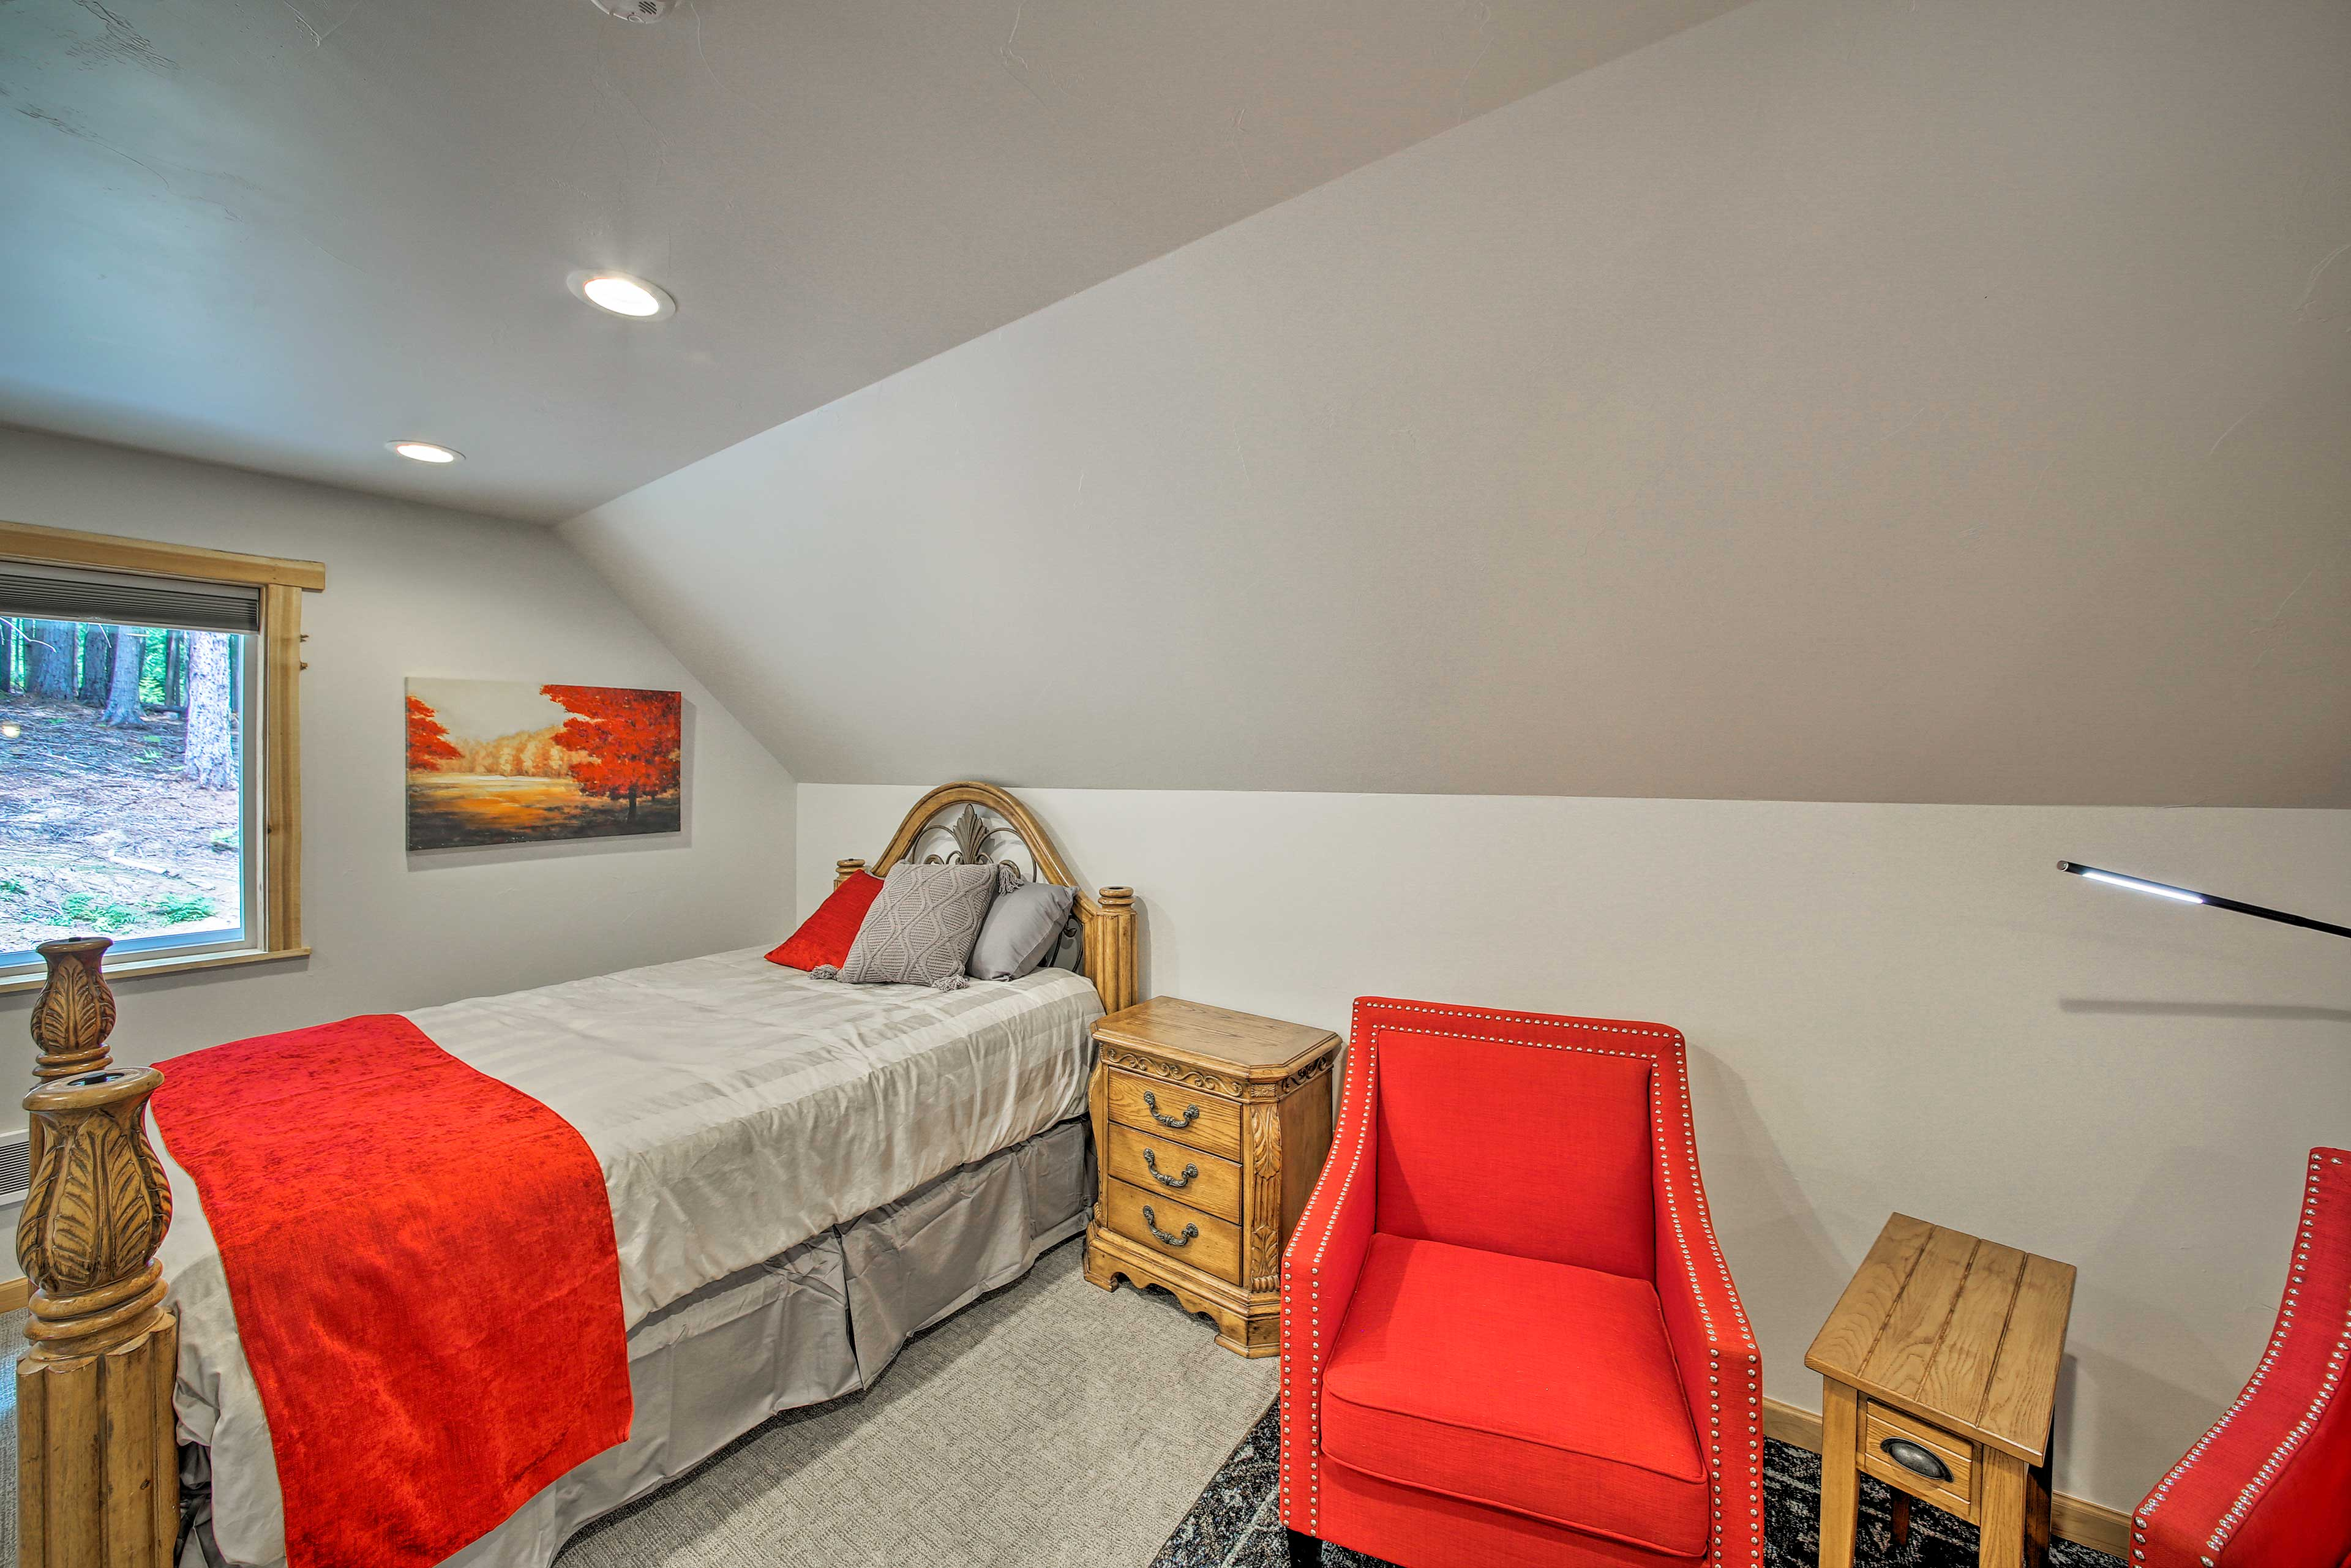 The second bedroom features another queen bed.